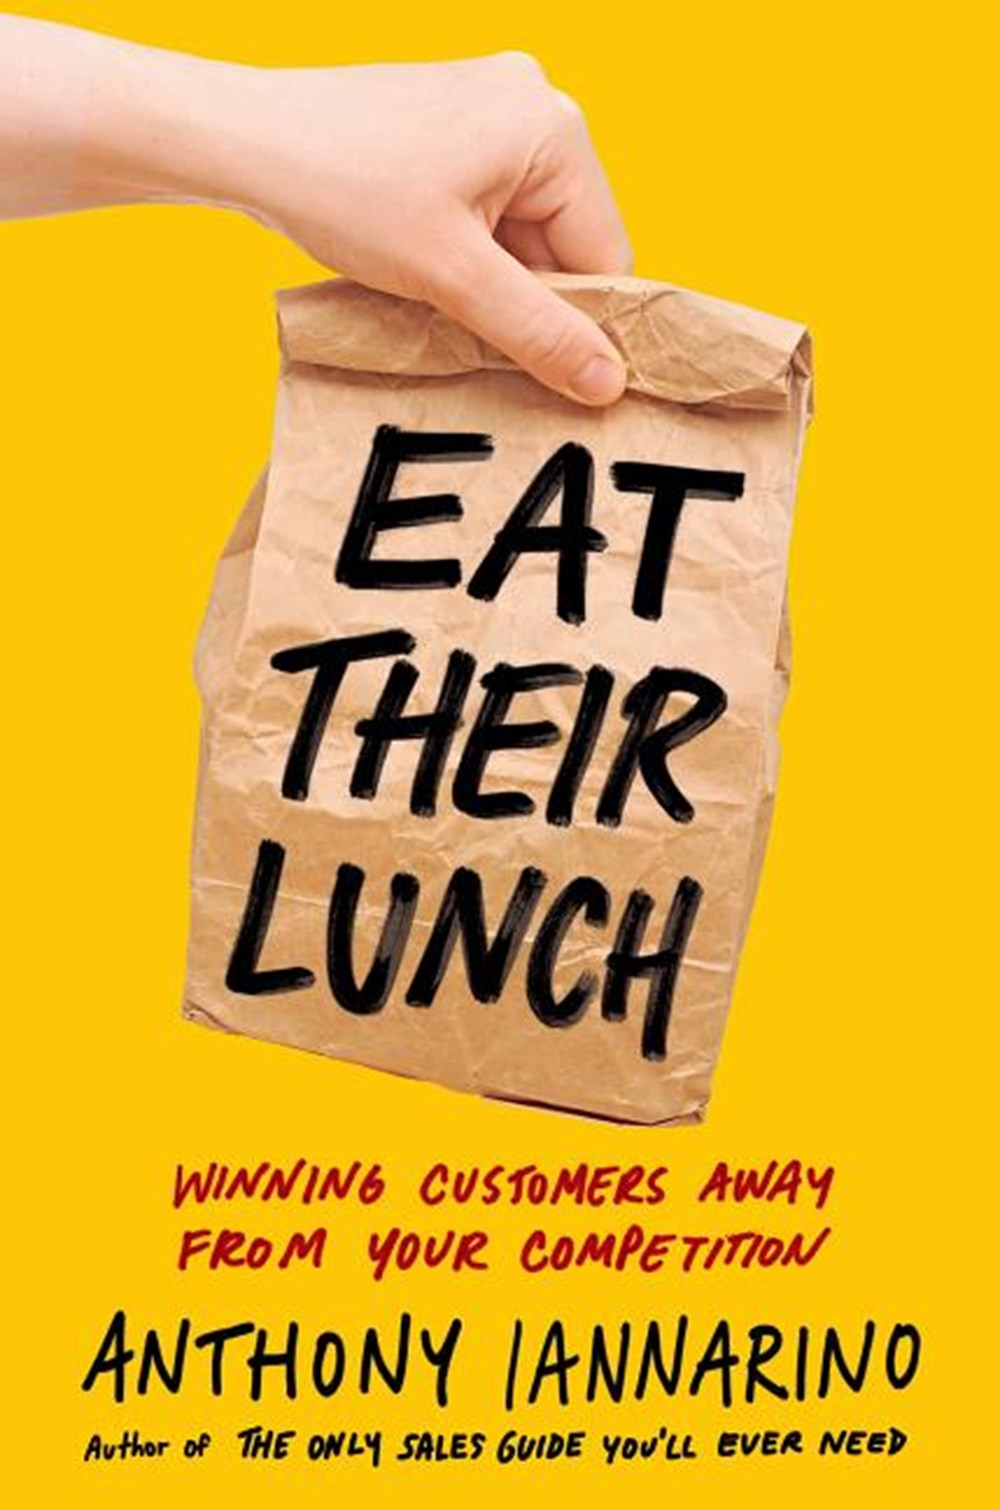 Eat Their Lunch Winning Customers Away from Your Competition